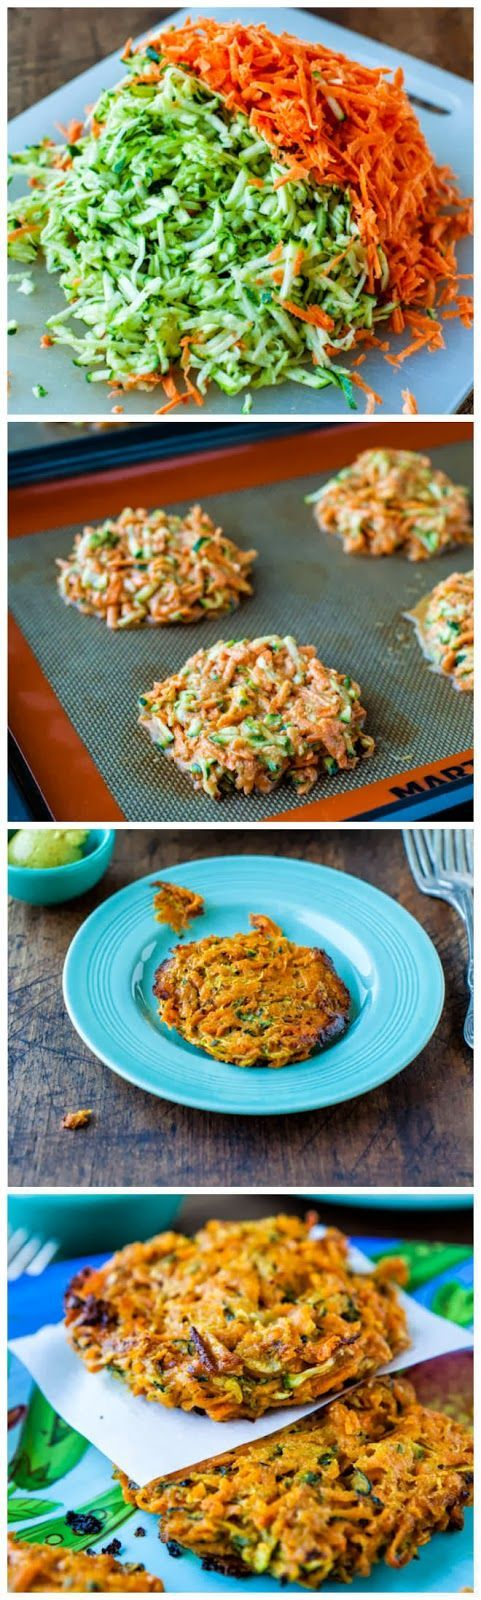 Gluten Free, Vegan Baked Chipotle Sweet Potato Fritters - Quick and Easy Week Night Fritter Recipe #healthy #glutenfree #vegan